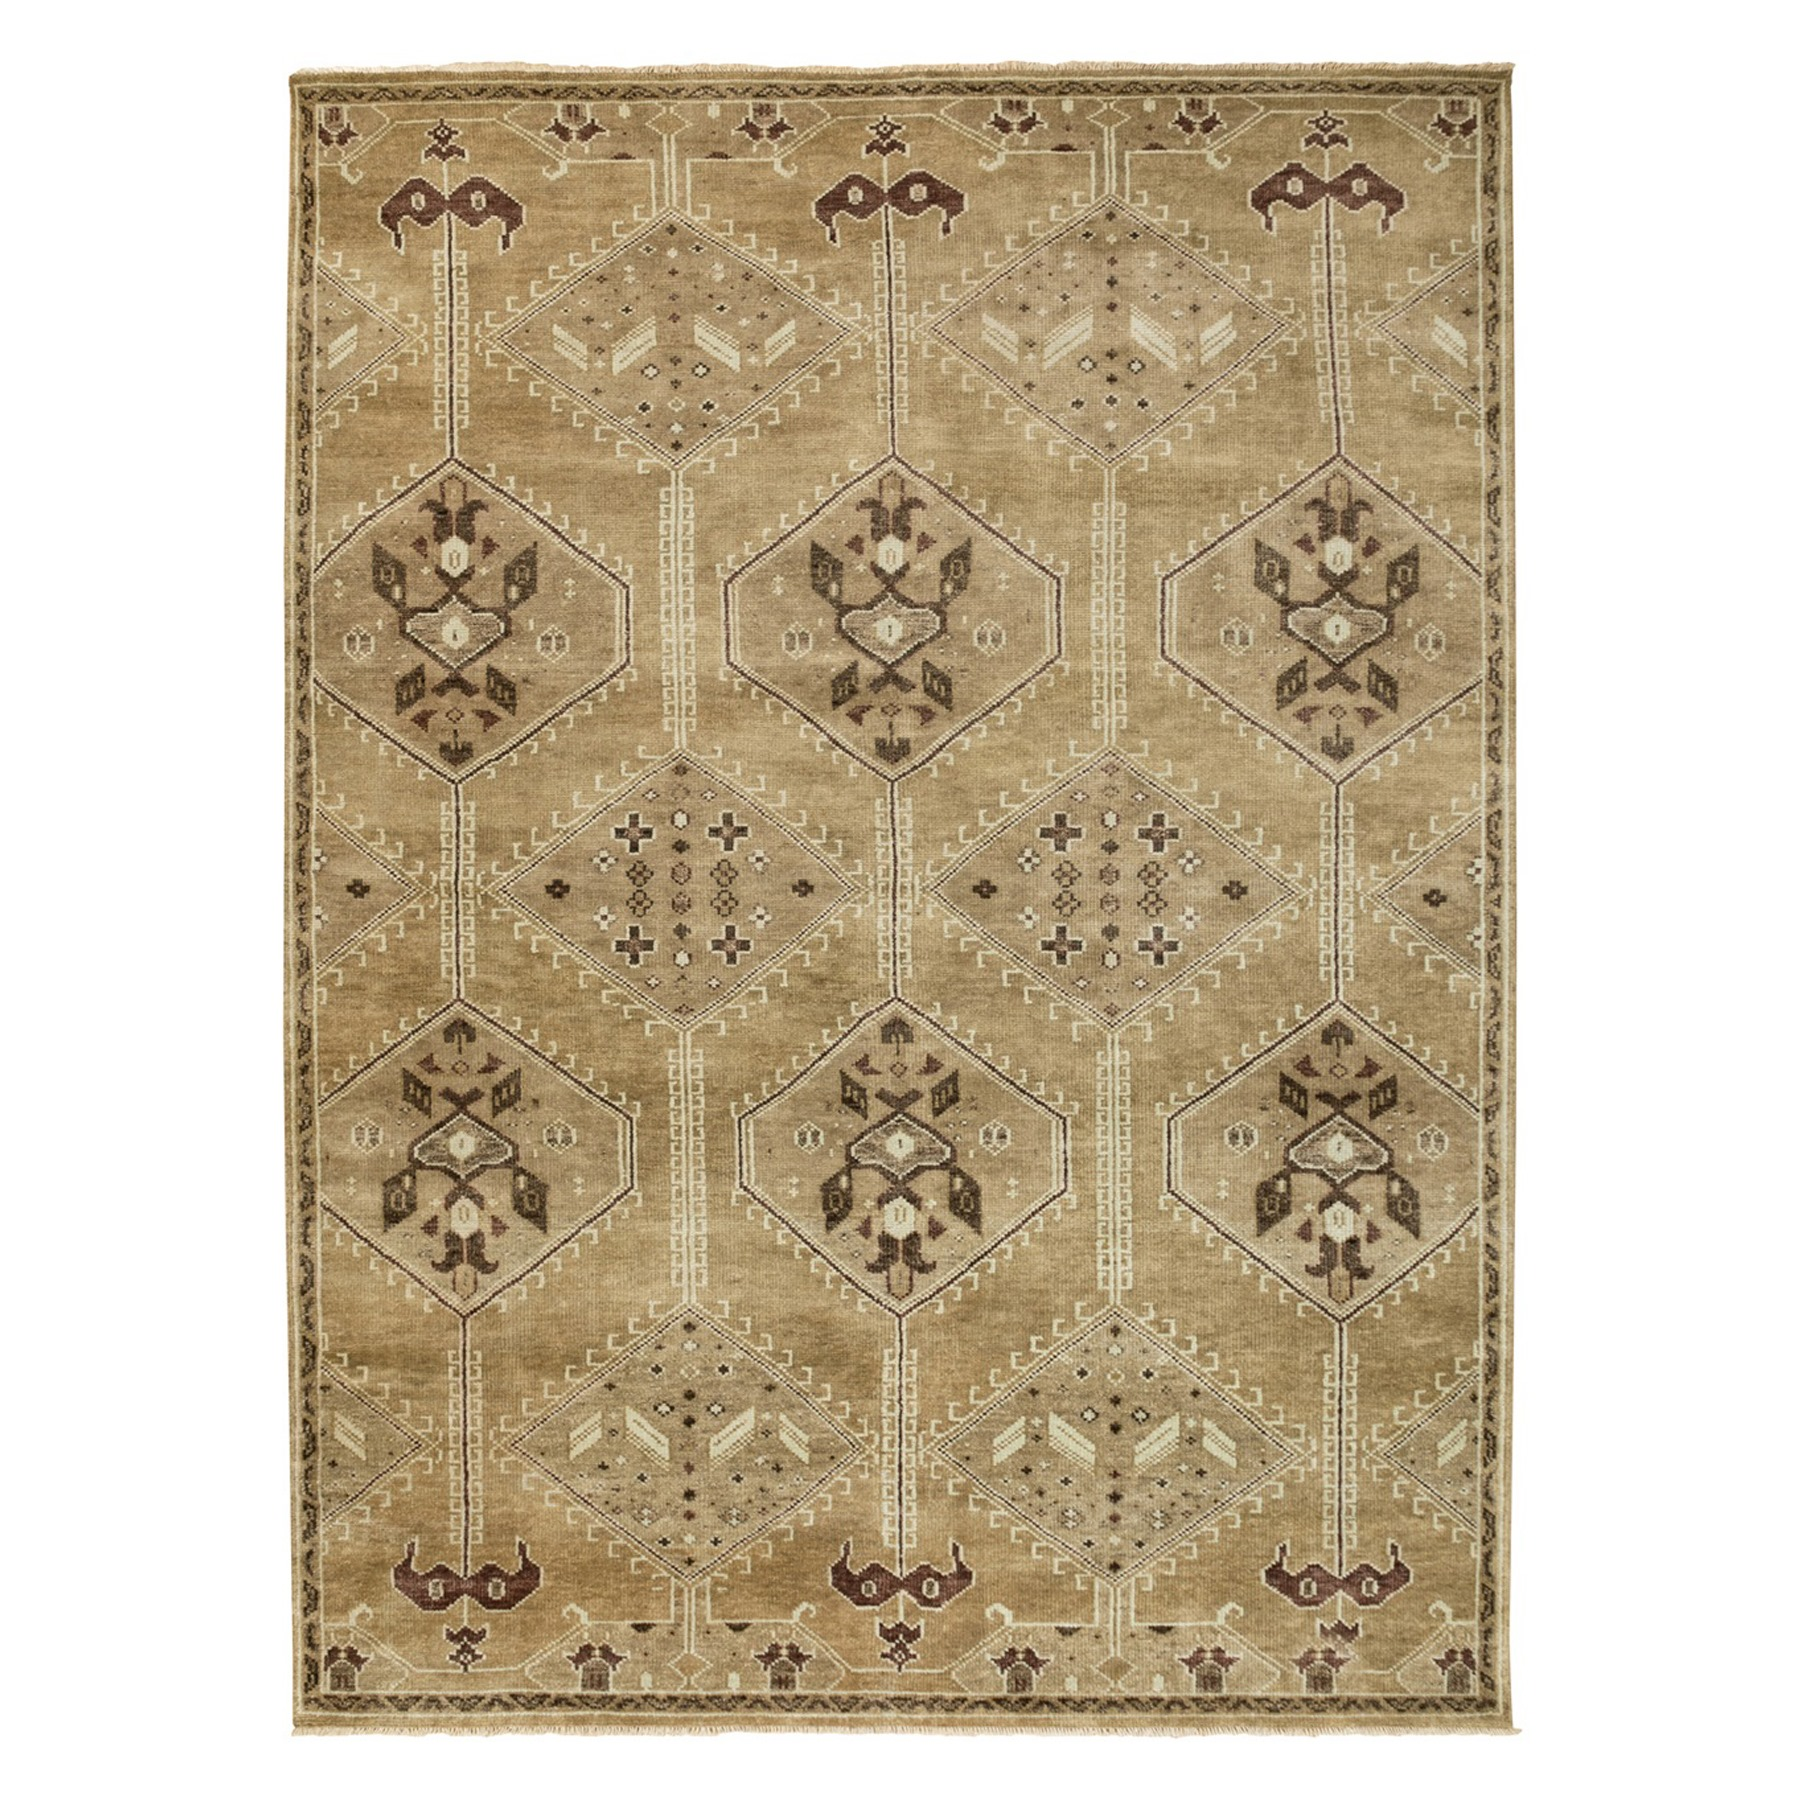 "8'8""x12' Brown Supple Collection Oushak Design Pure Wool Hand Knotted Oriental Rug"